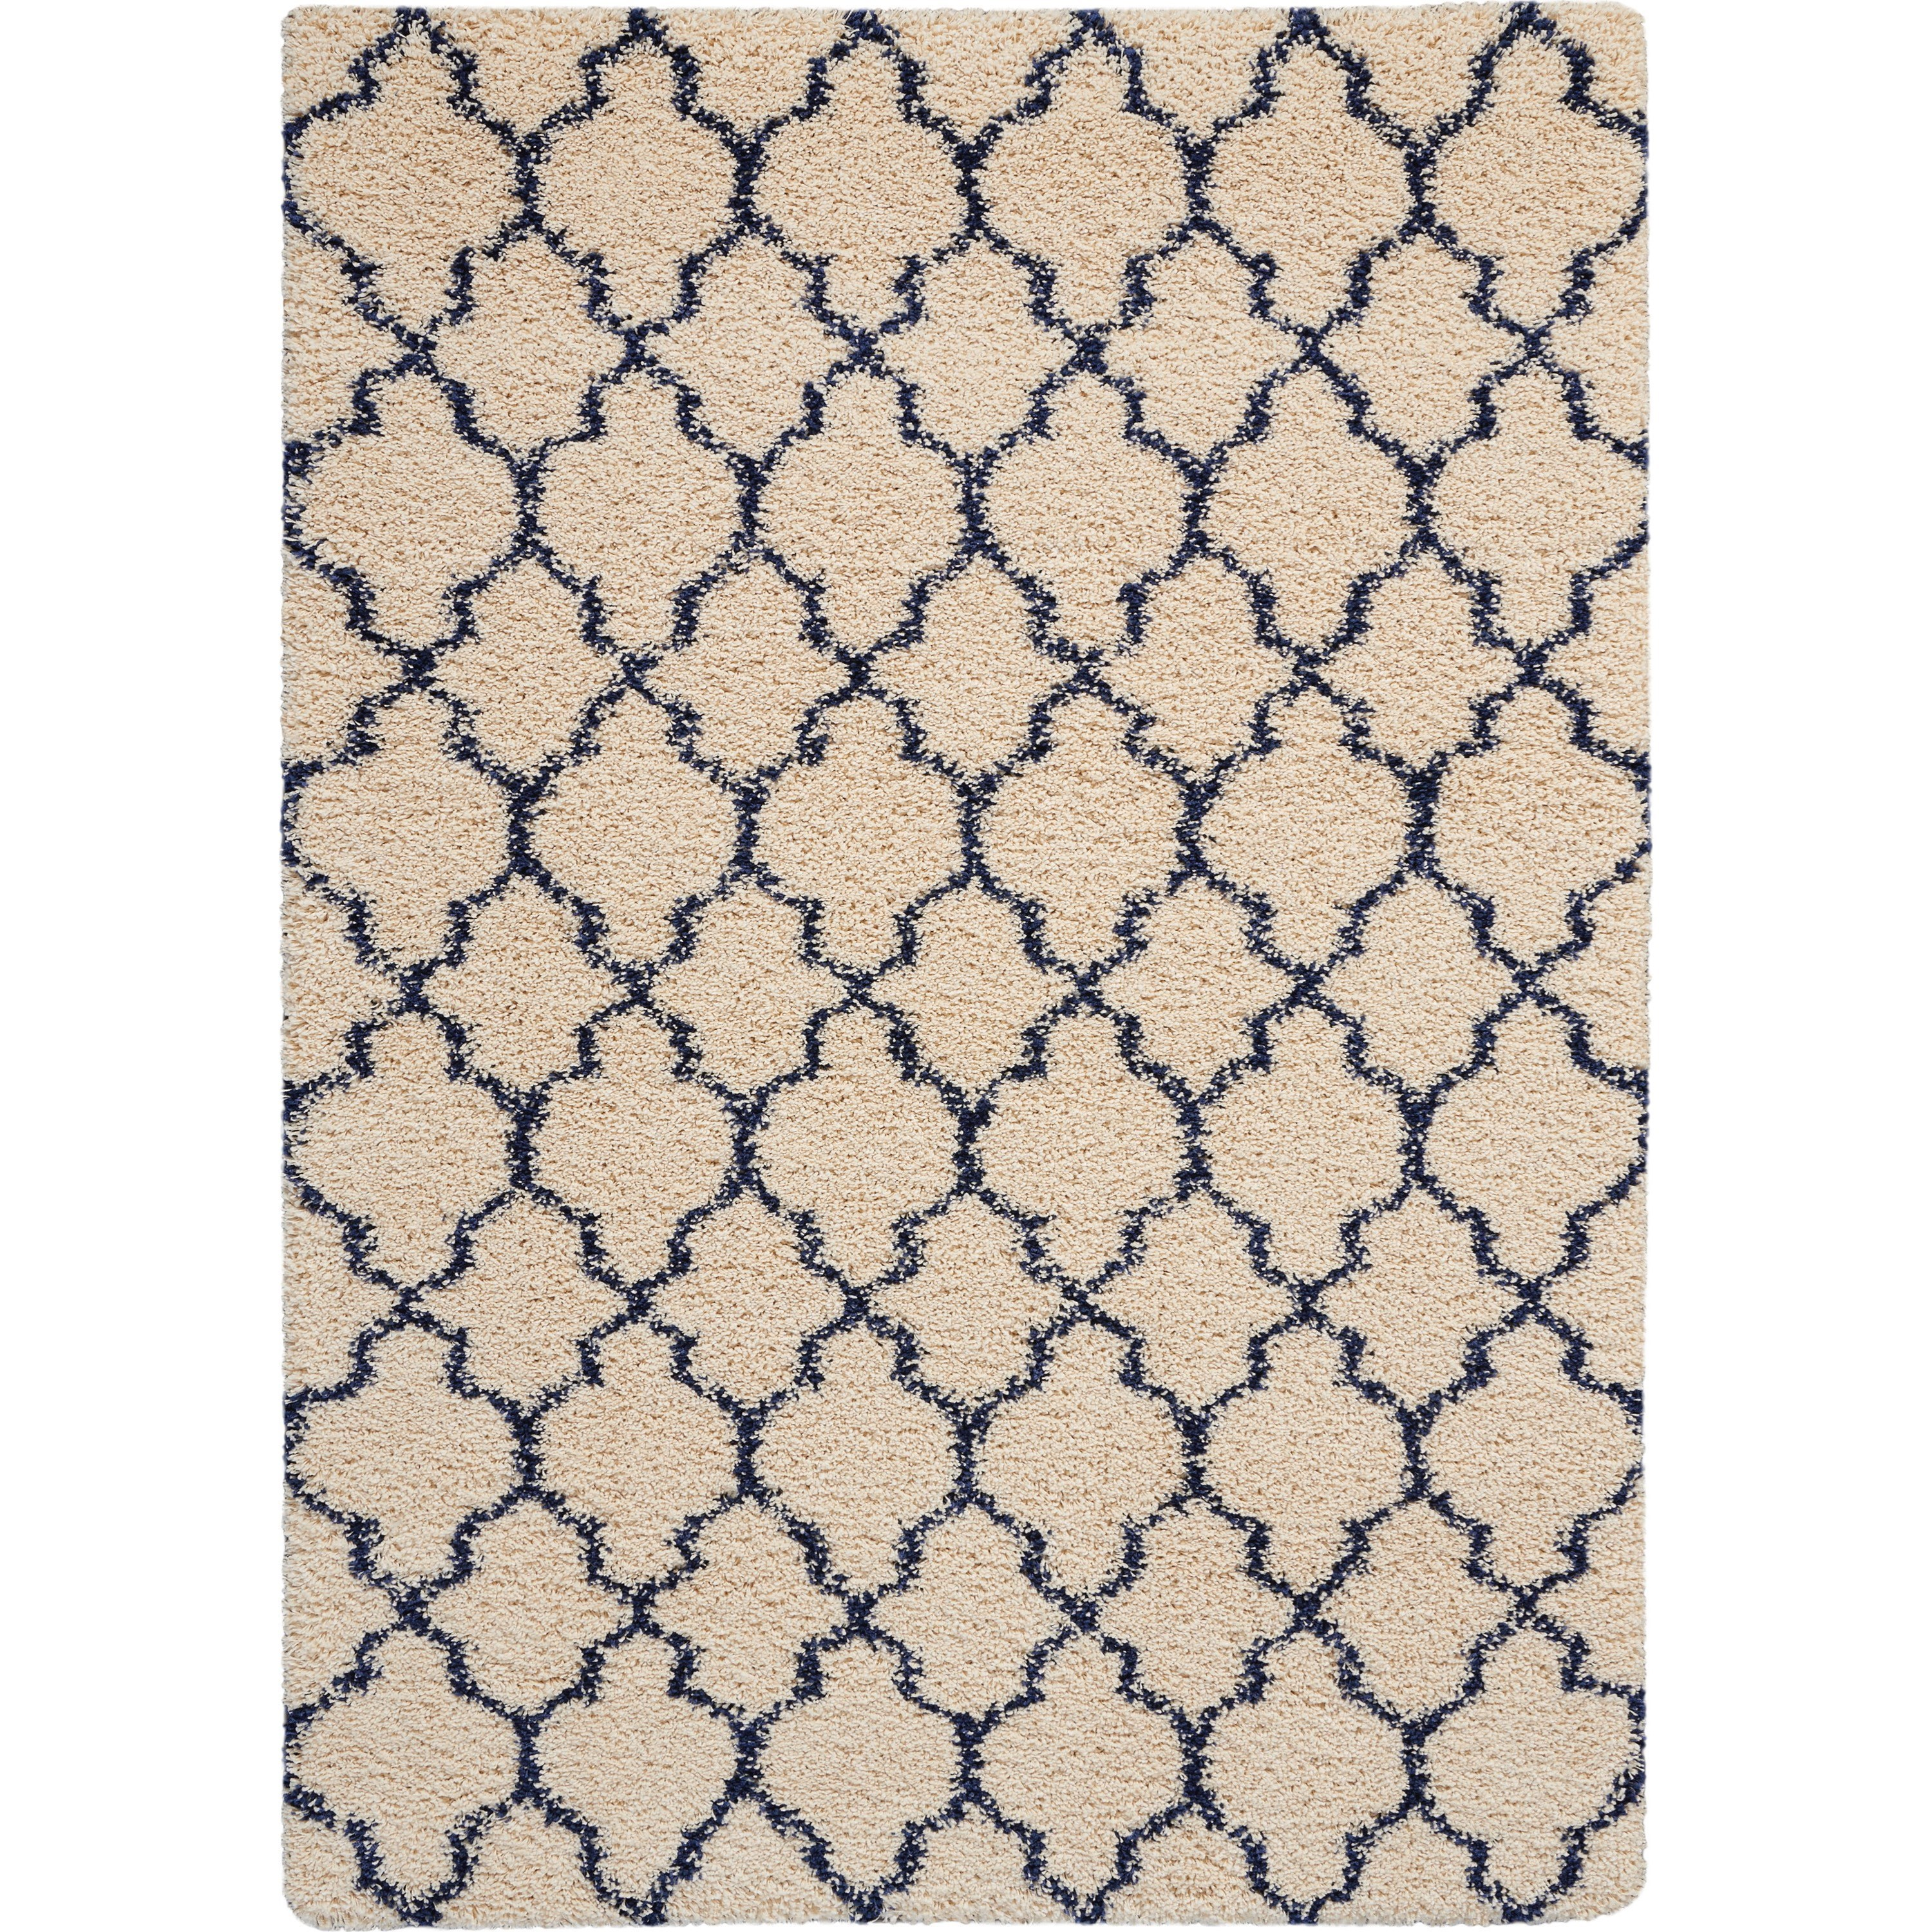 Amore Amore AMOR2 Blue and Ivory 5'x8' Area Rug by Nourison at Home Collections Furniture